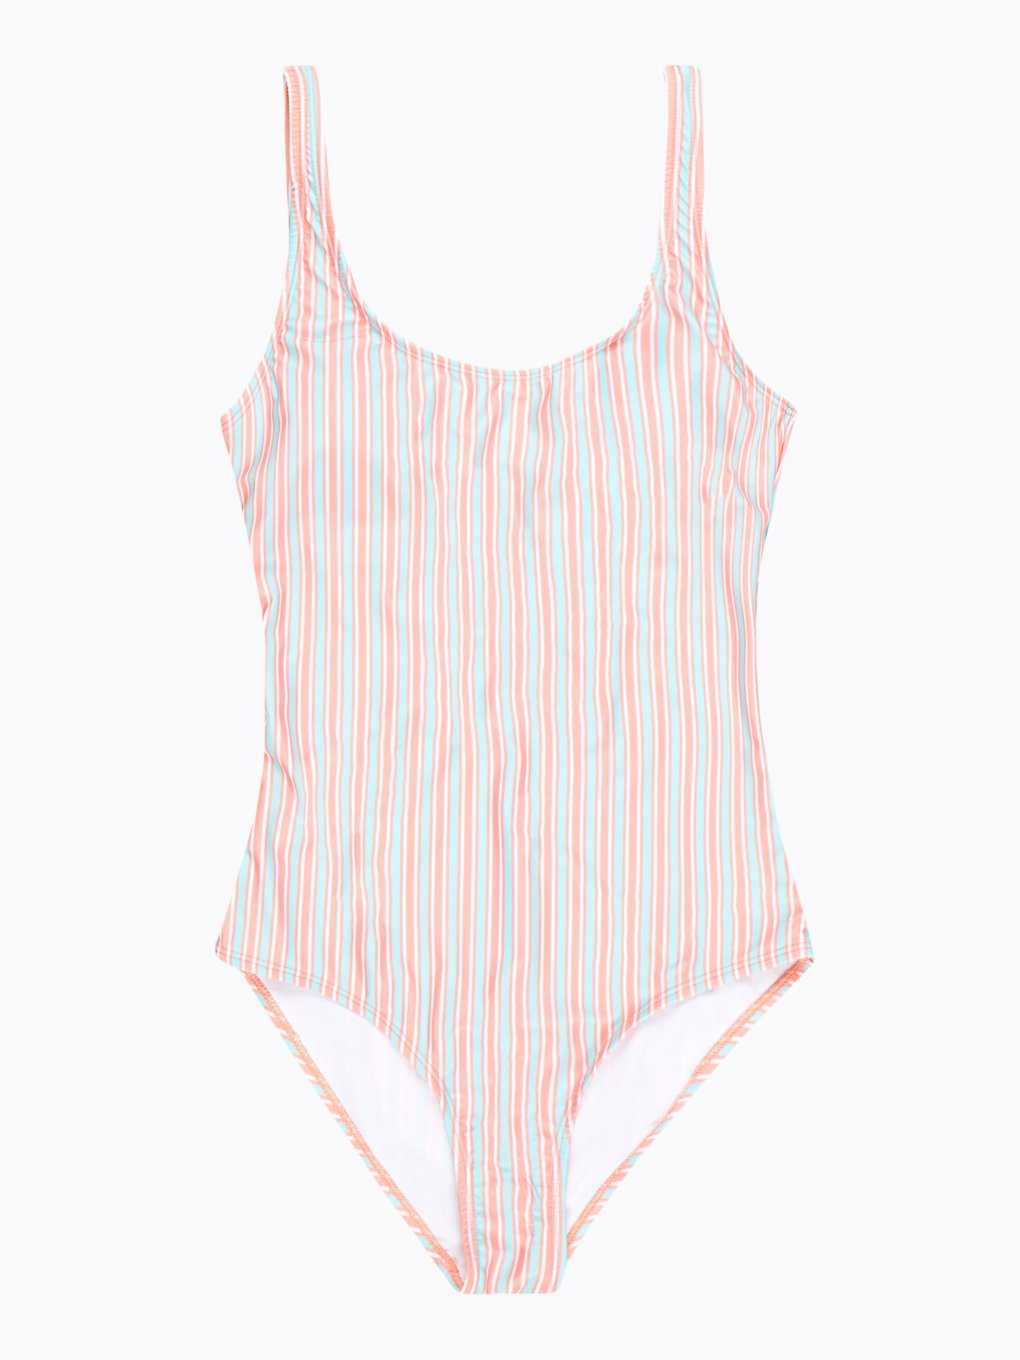 Candy stripes swimsuit